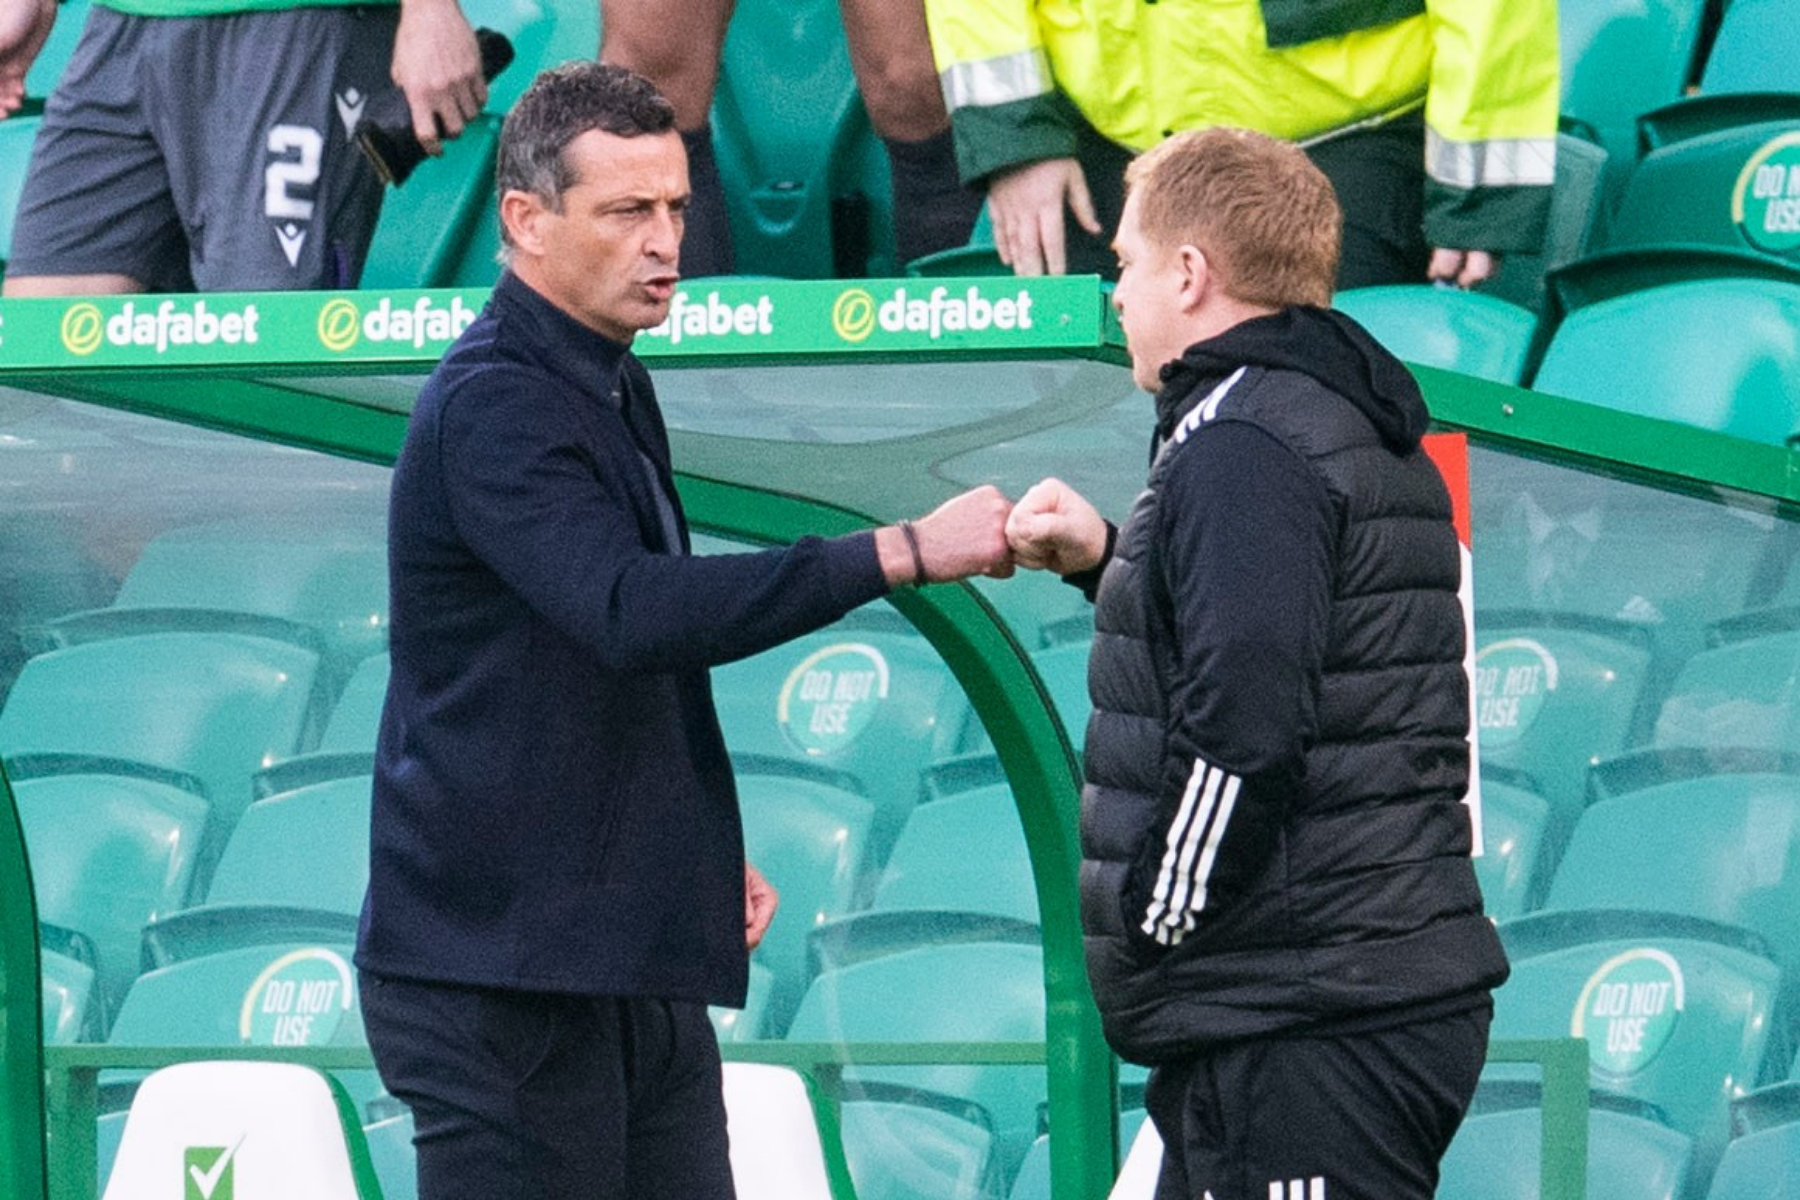 TV host claims Celtic asked Hibs EIGHT times to move post-Dubai fixture before SPFL intervened